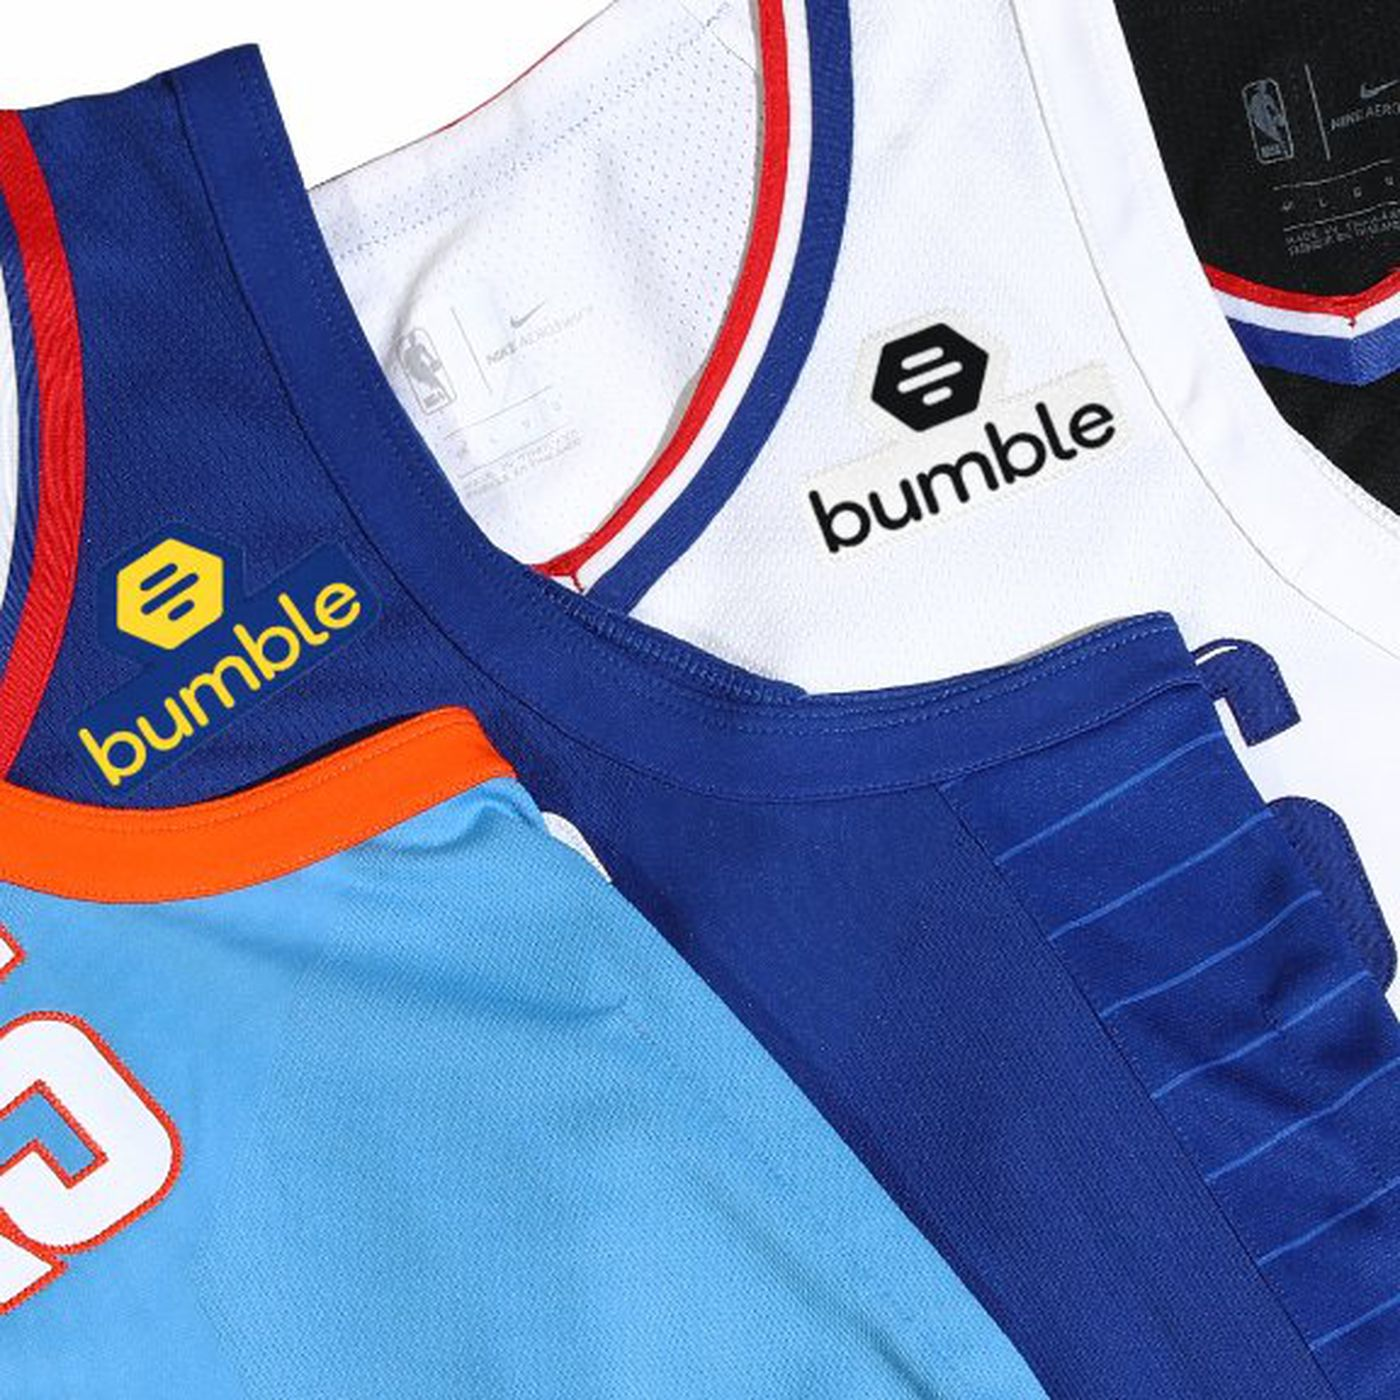 103e431c4 Los Angeles Clippers announce jersey sponsorship patch with Bumble -  SBNation.com